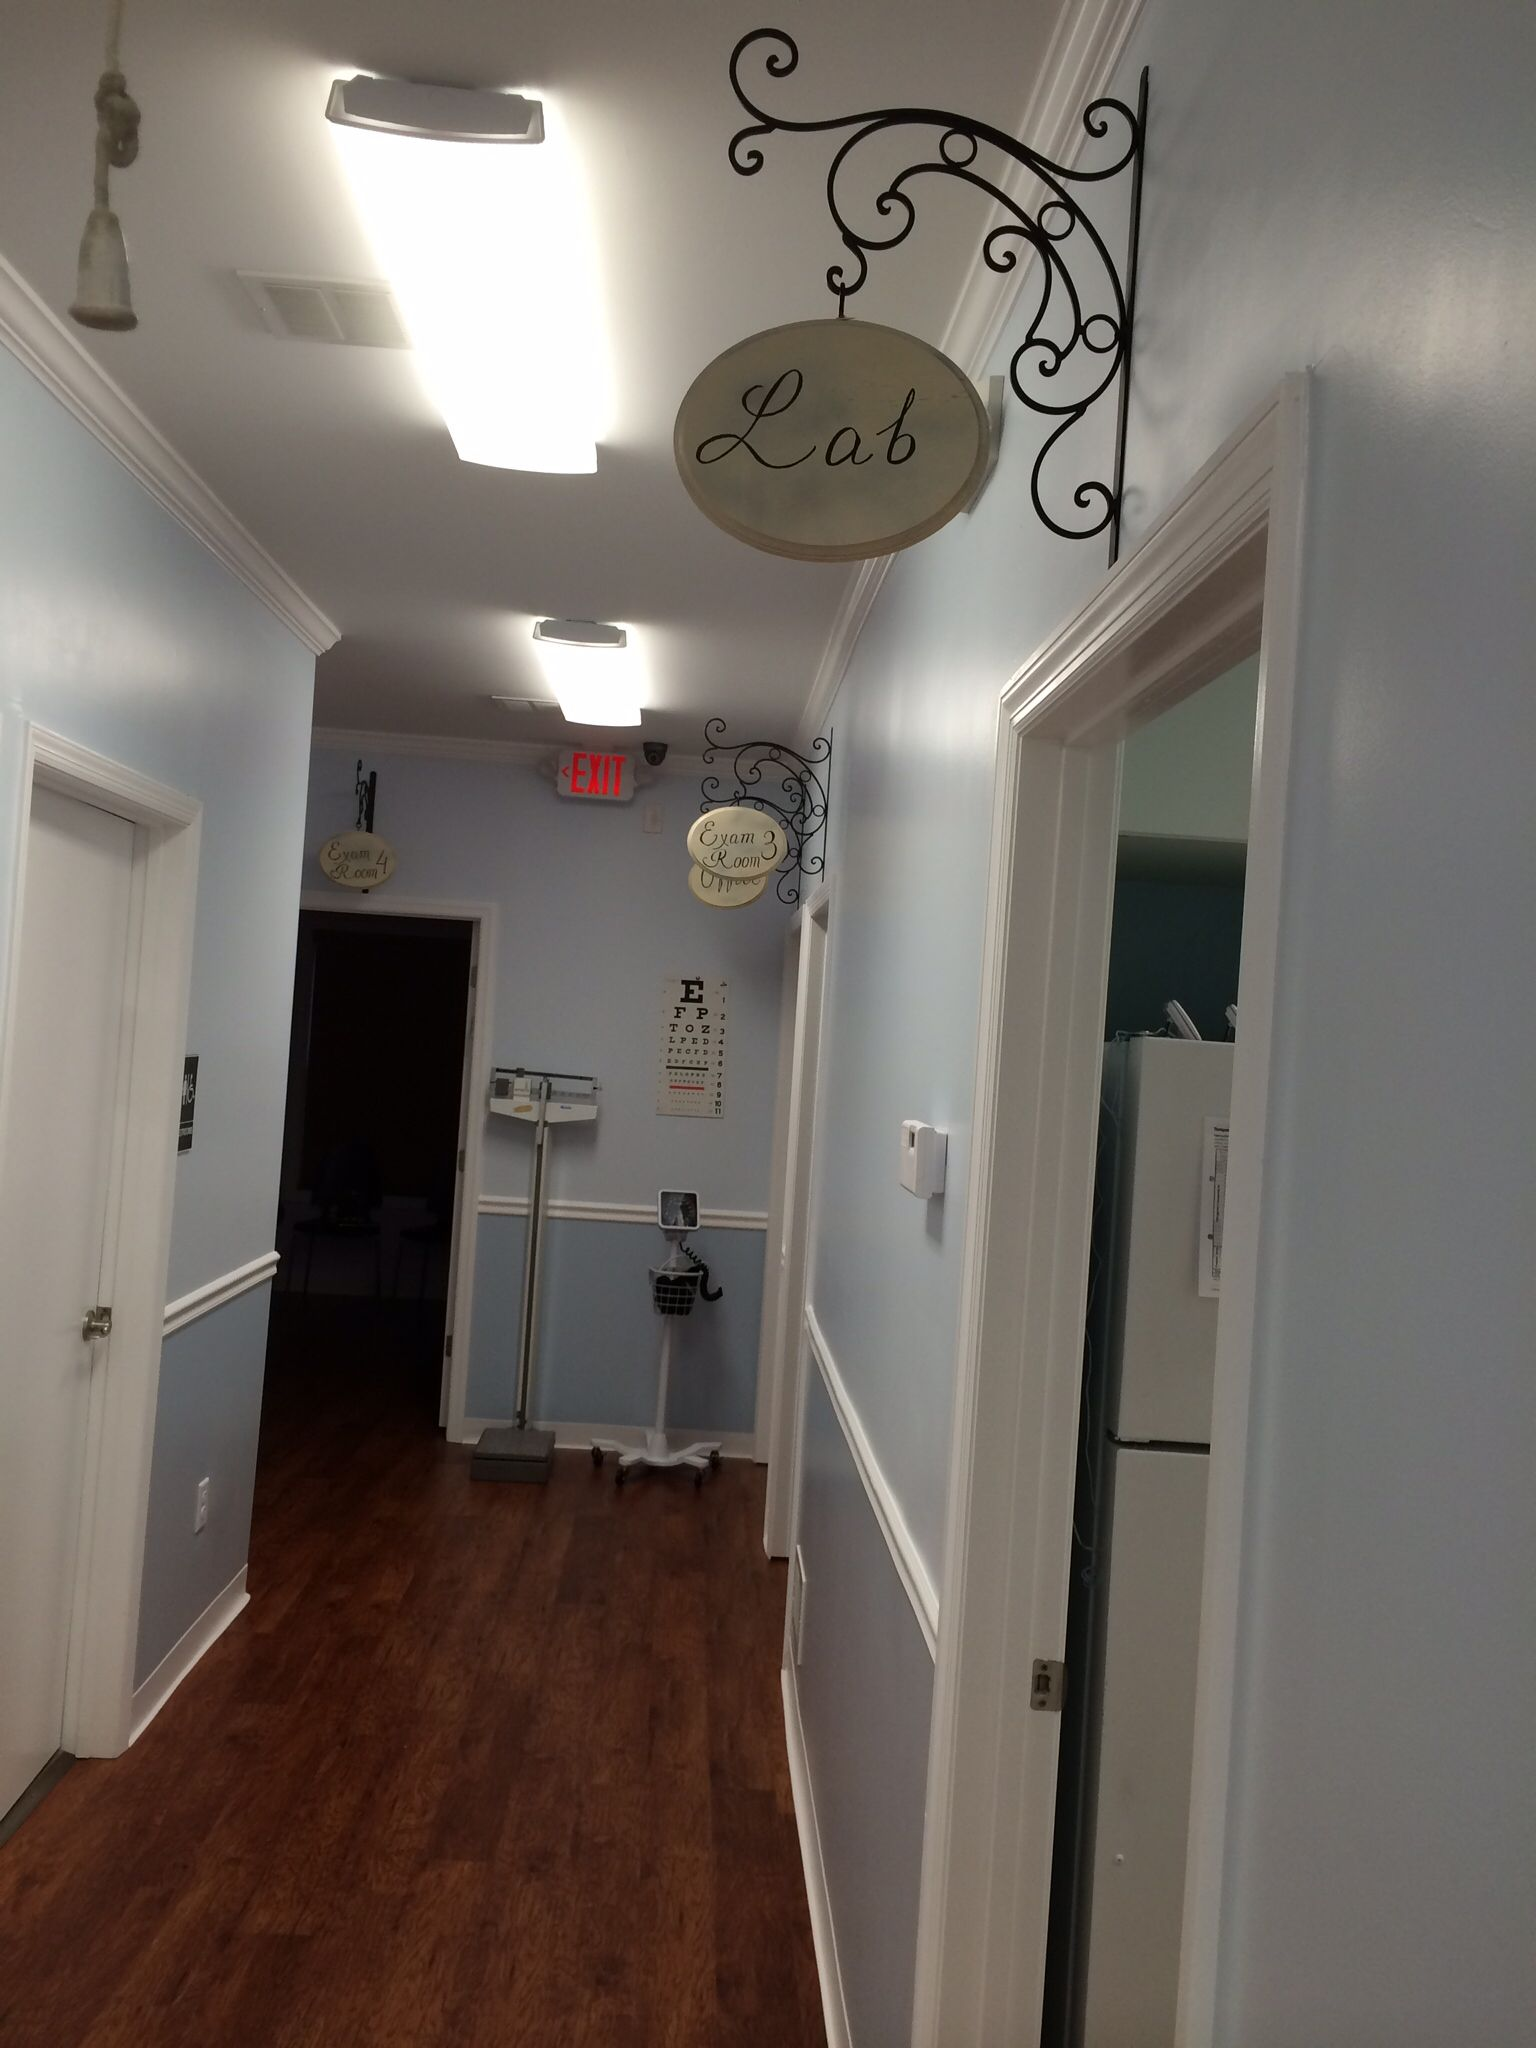 Hallway Pediatrics office, Office design, Design